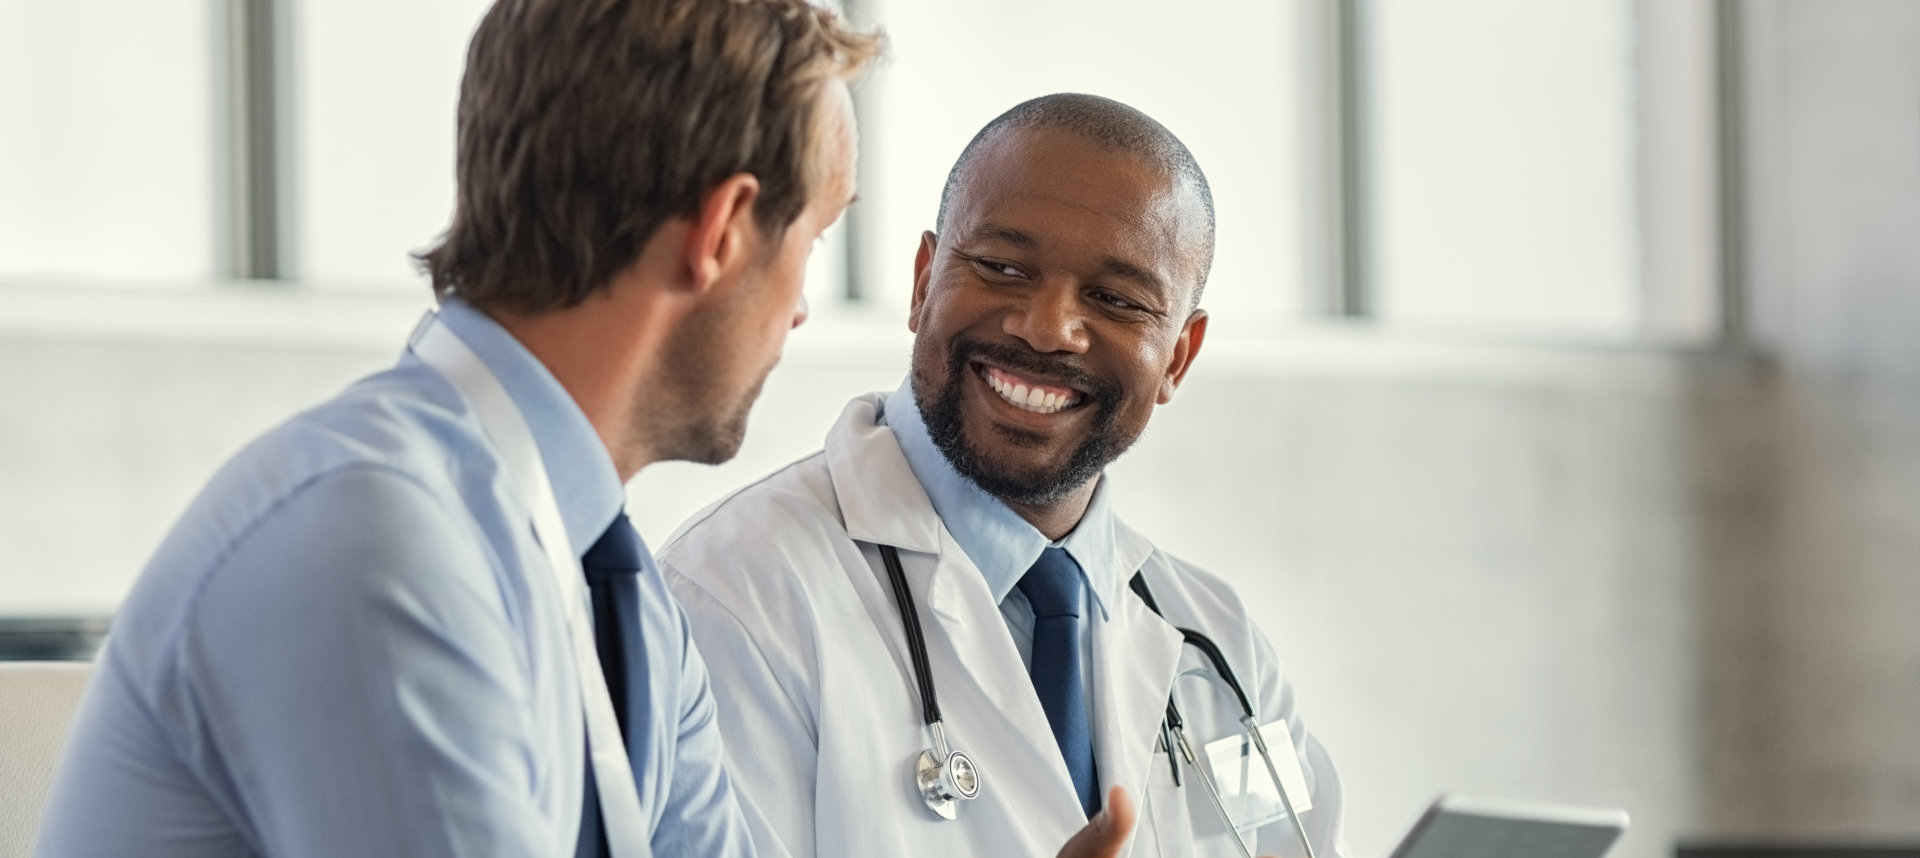 doctor smiling to his patient